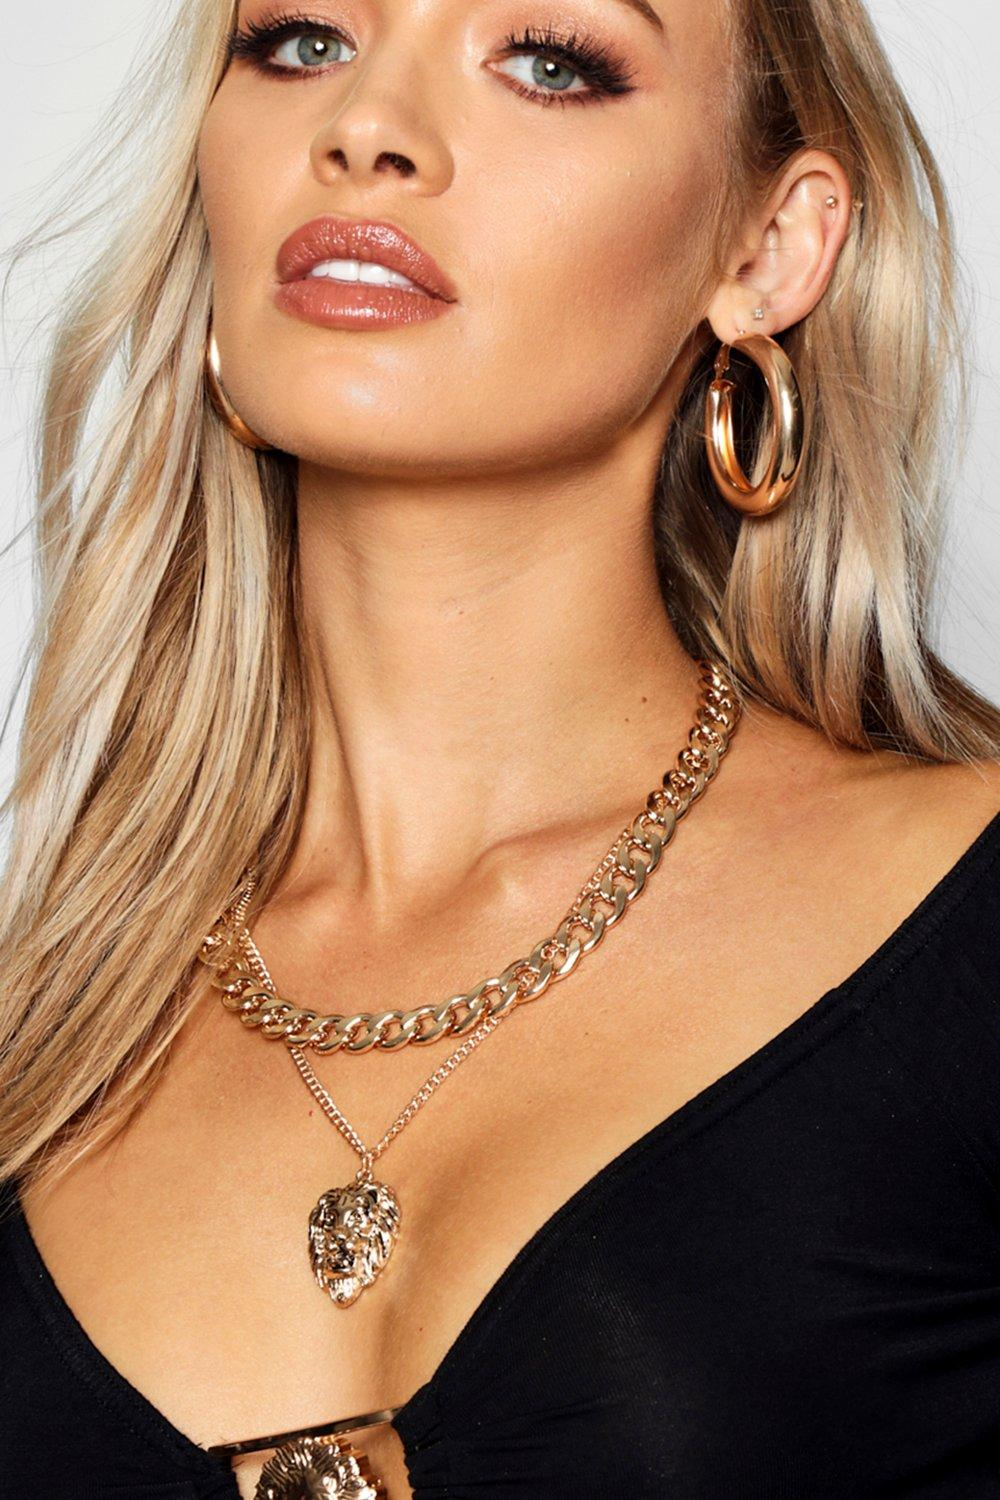 boohoo Womens Chunky Chain & Lion Layered Necklace - Metallics - One Size, Metallics